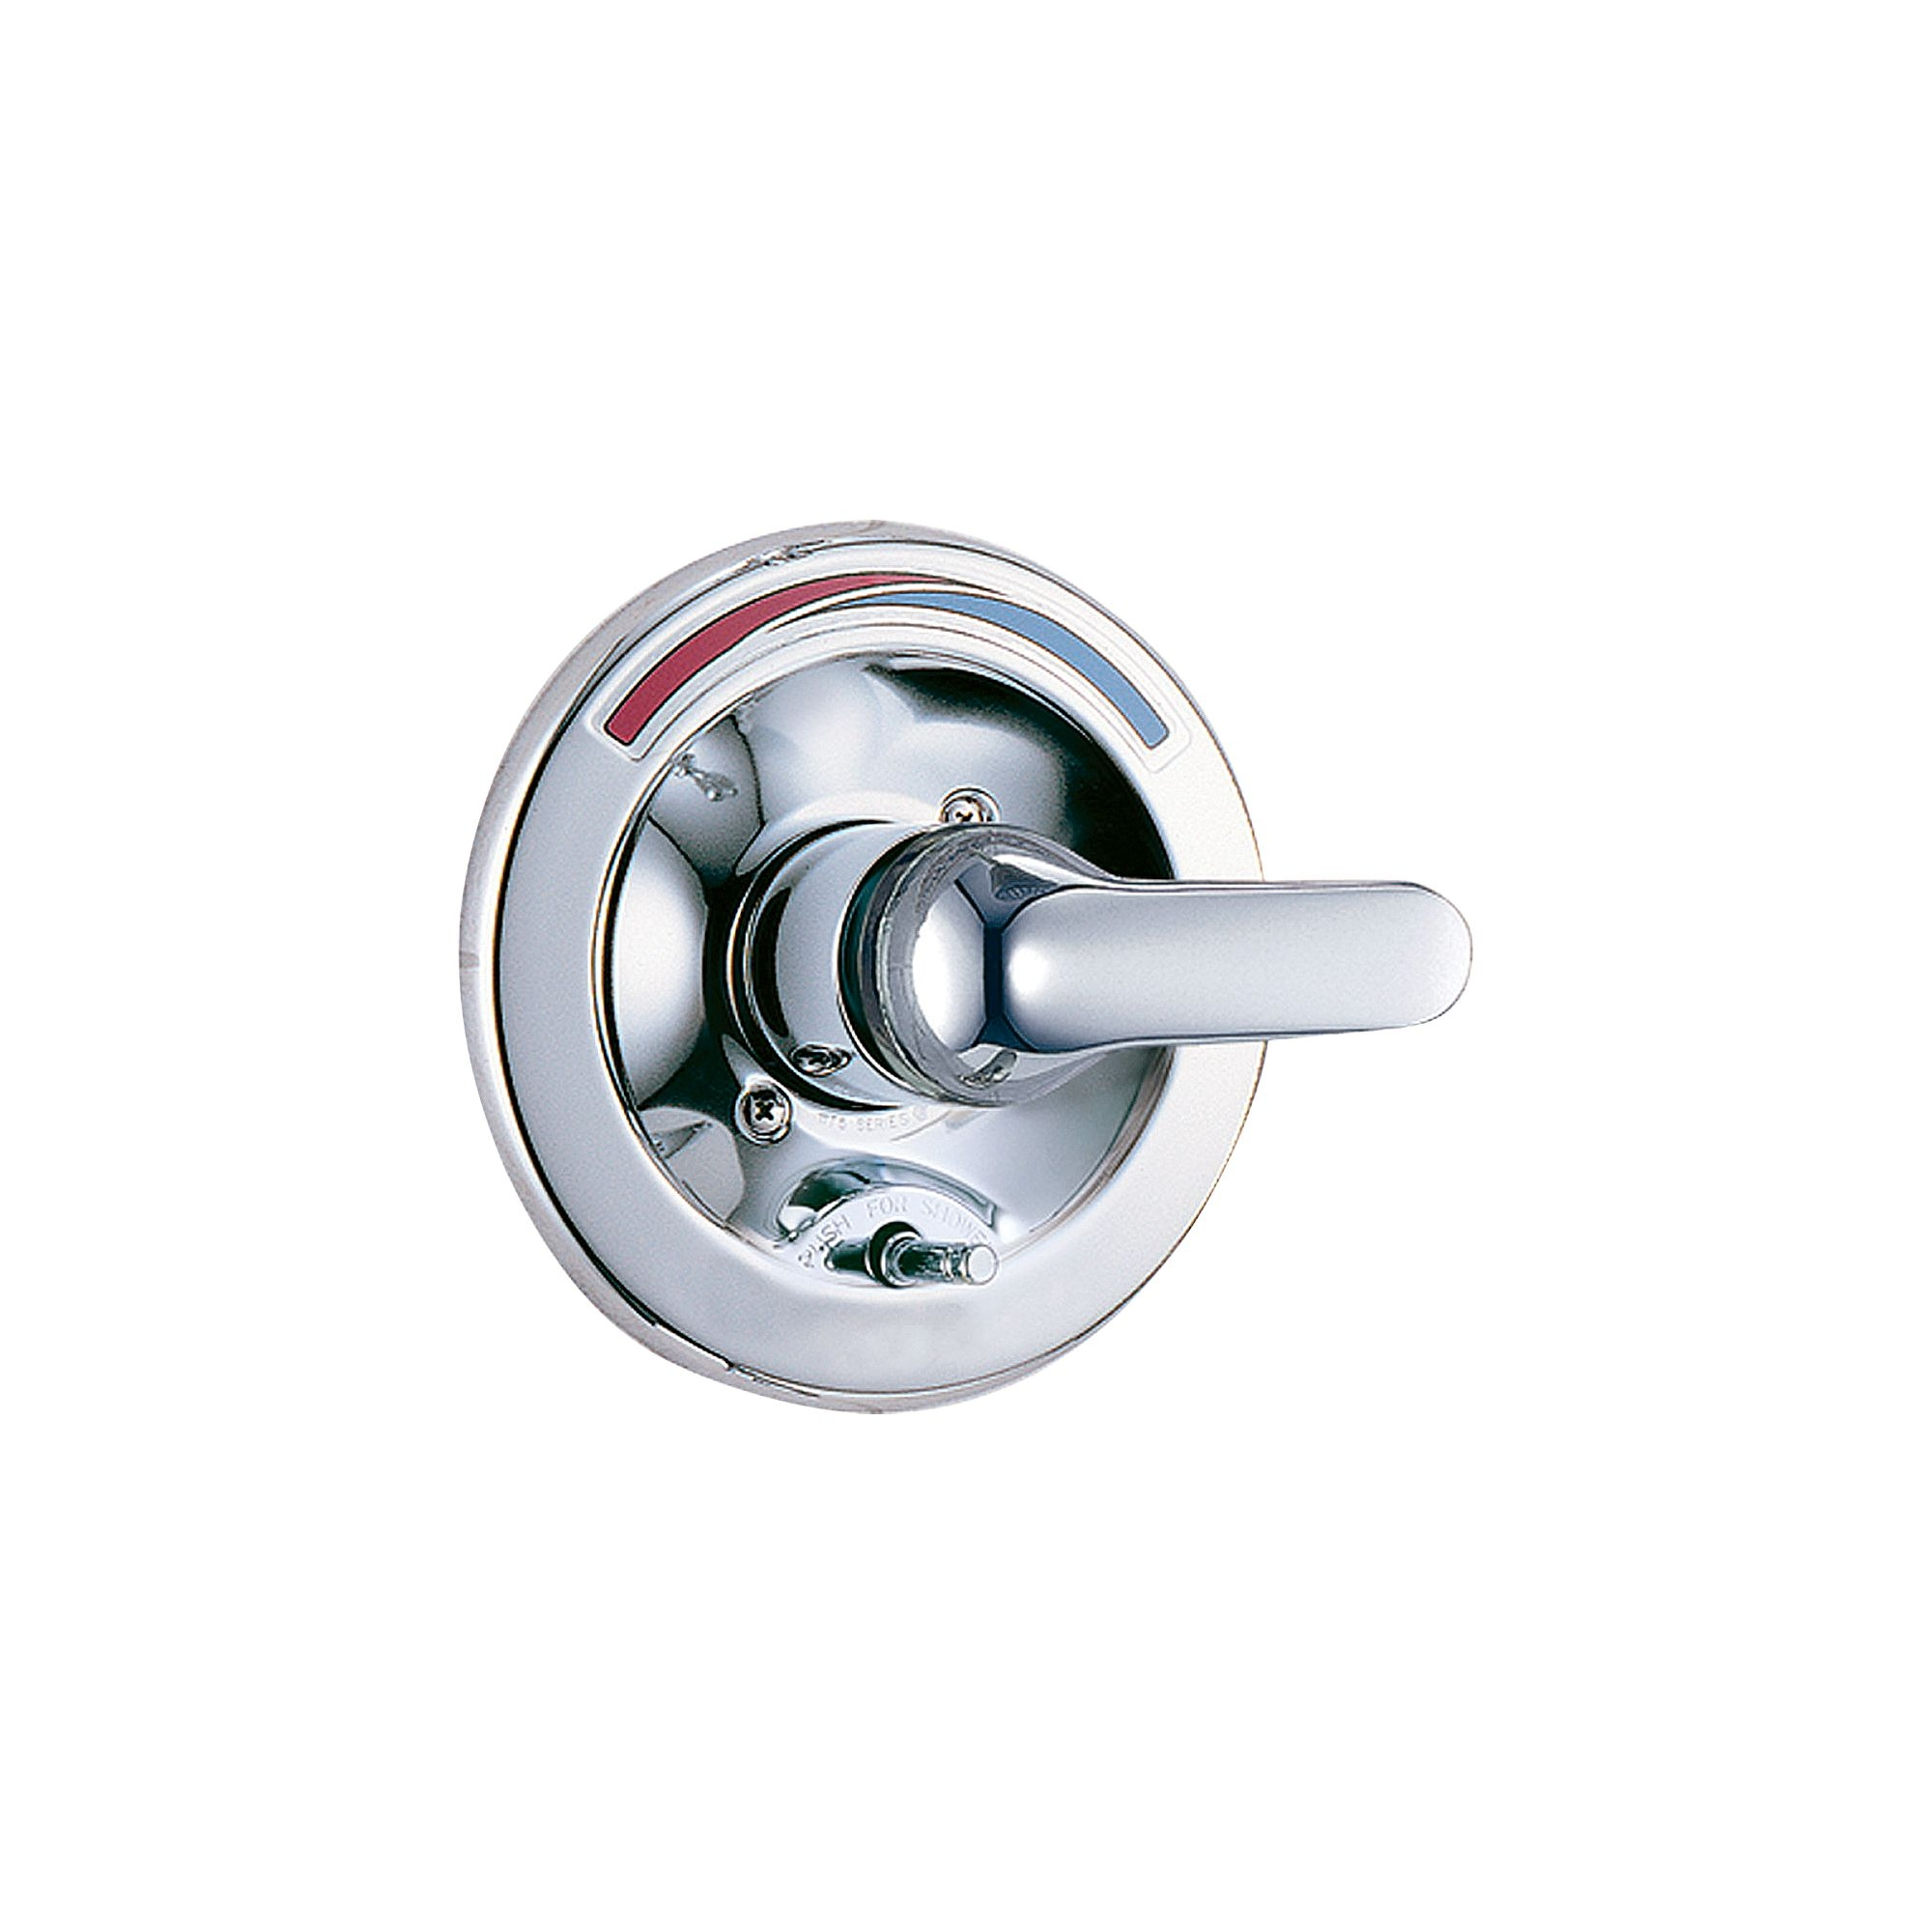 Ideas, 47 single handle shower valve replacement problem no hot water intended for proportions 2000 x 2000  .